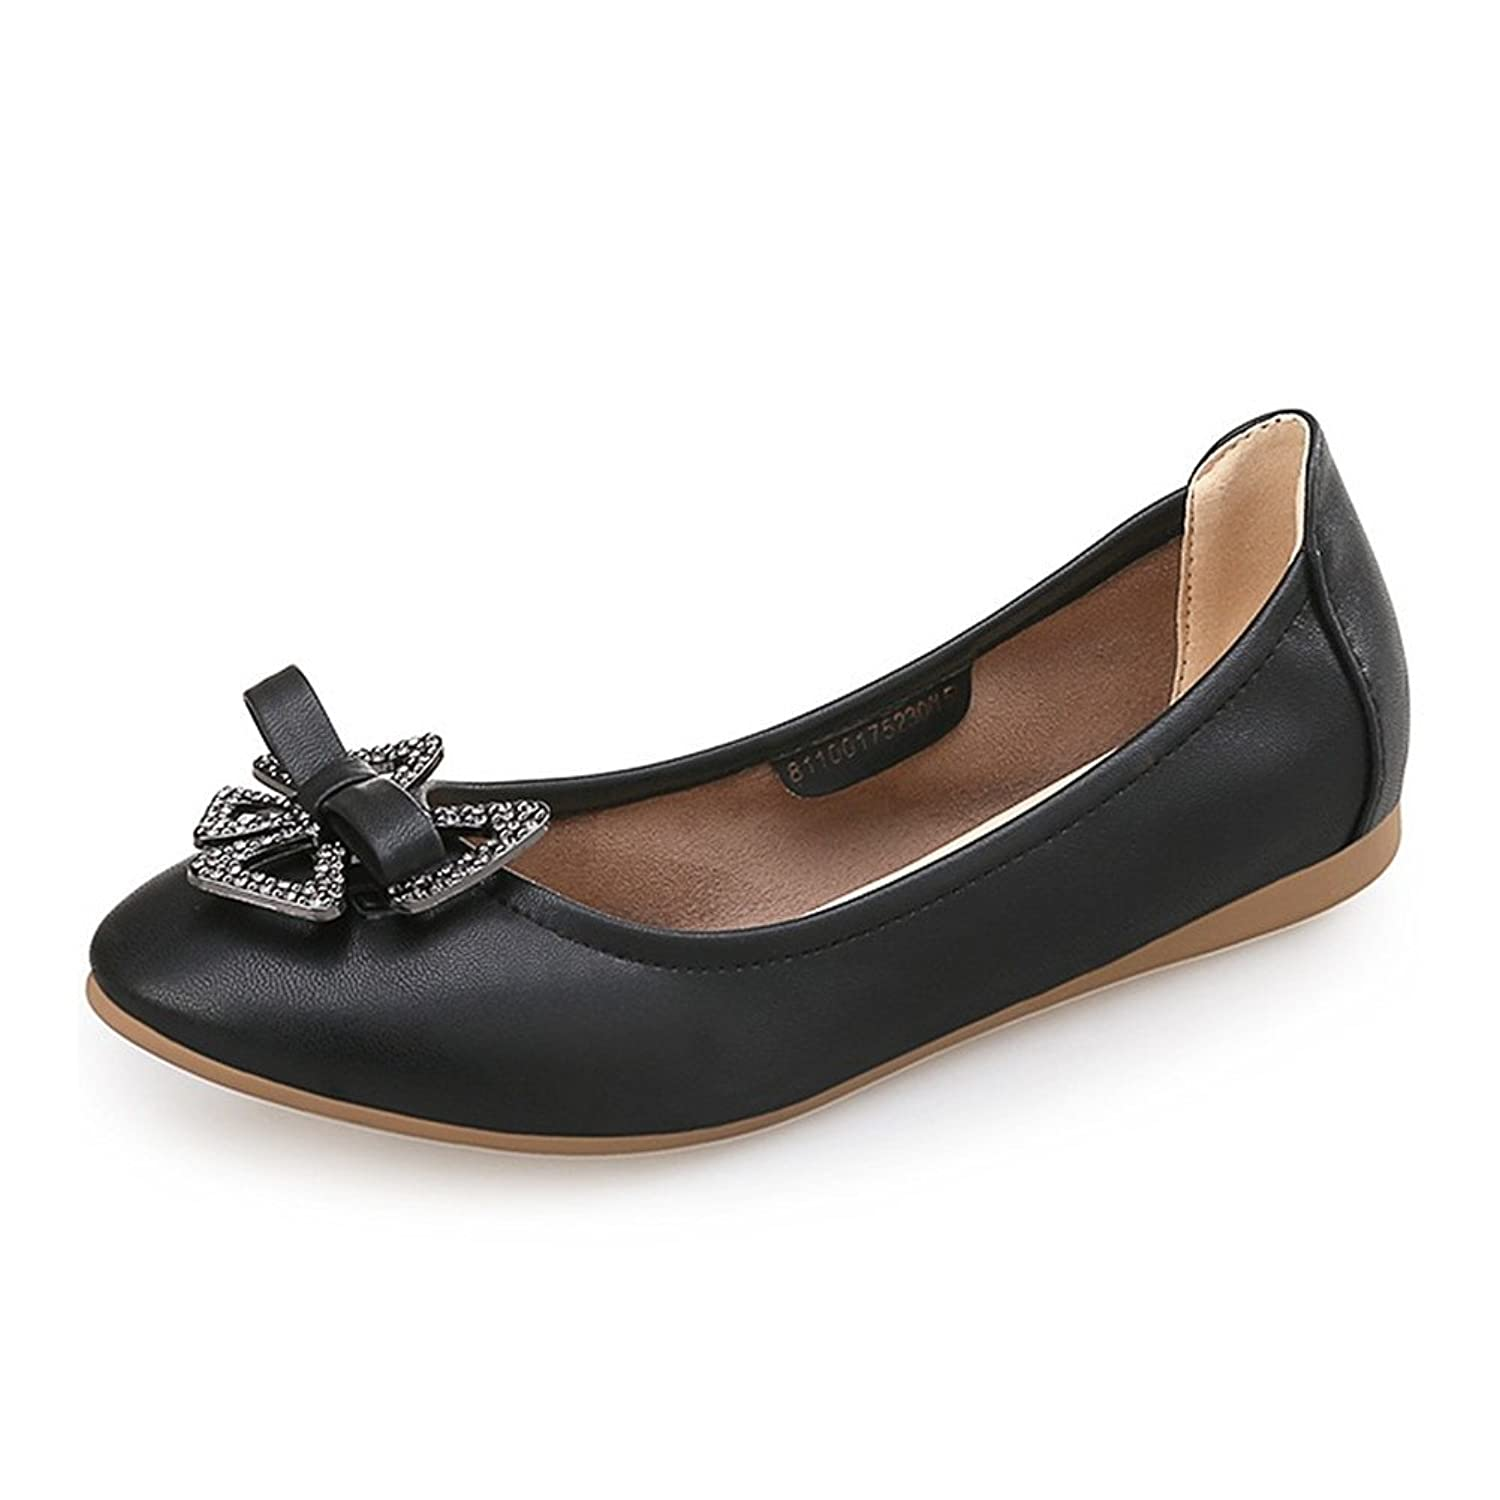 Always Pretty Women's Casual Leather Loafer Slip On Flat